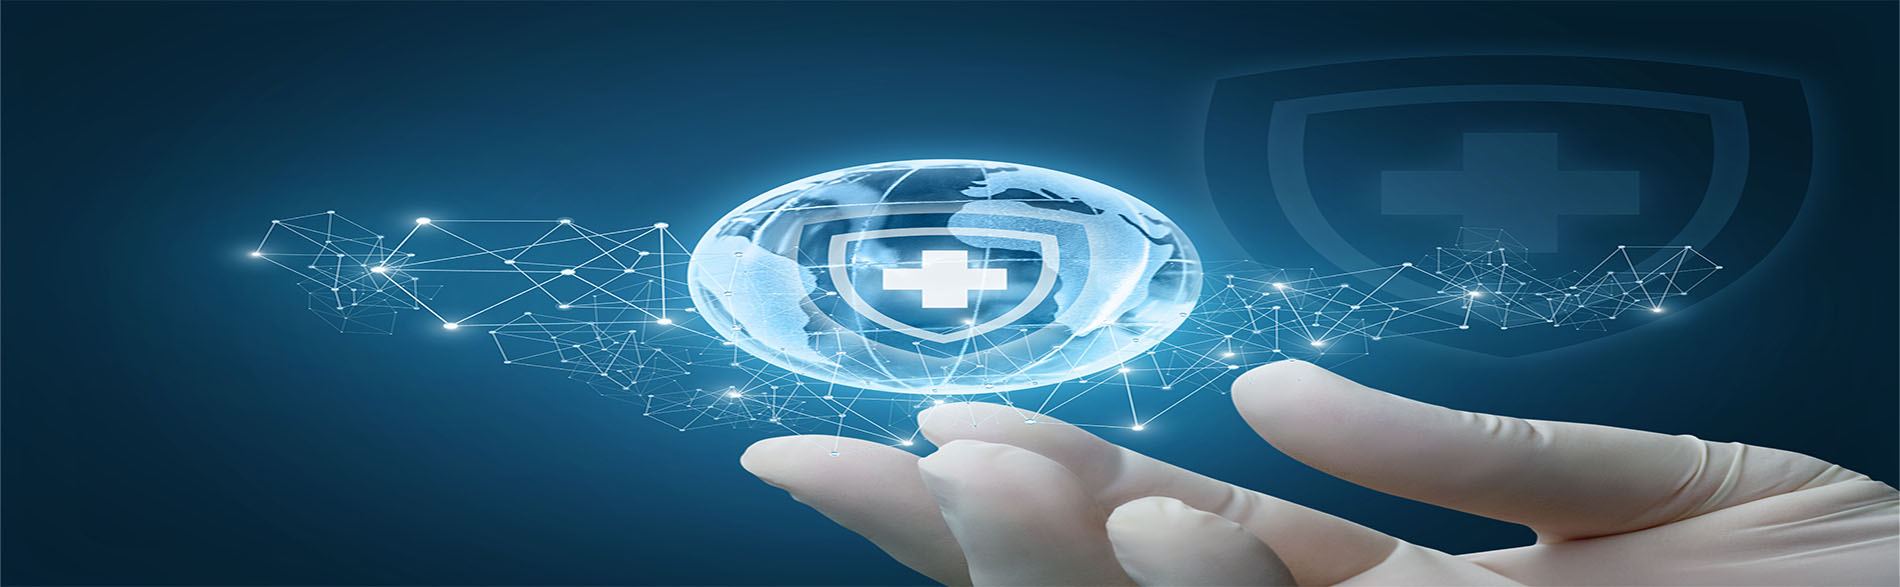 Predicting Shoppable Services Saves USD 5M in Medical Costs for a Leading Health Insurance Provider